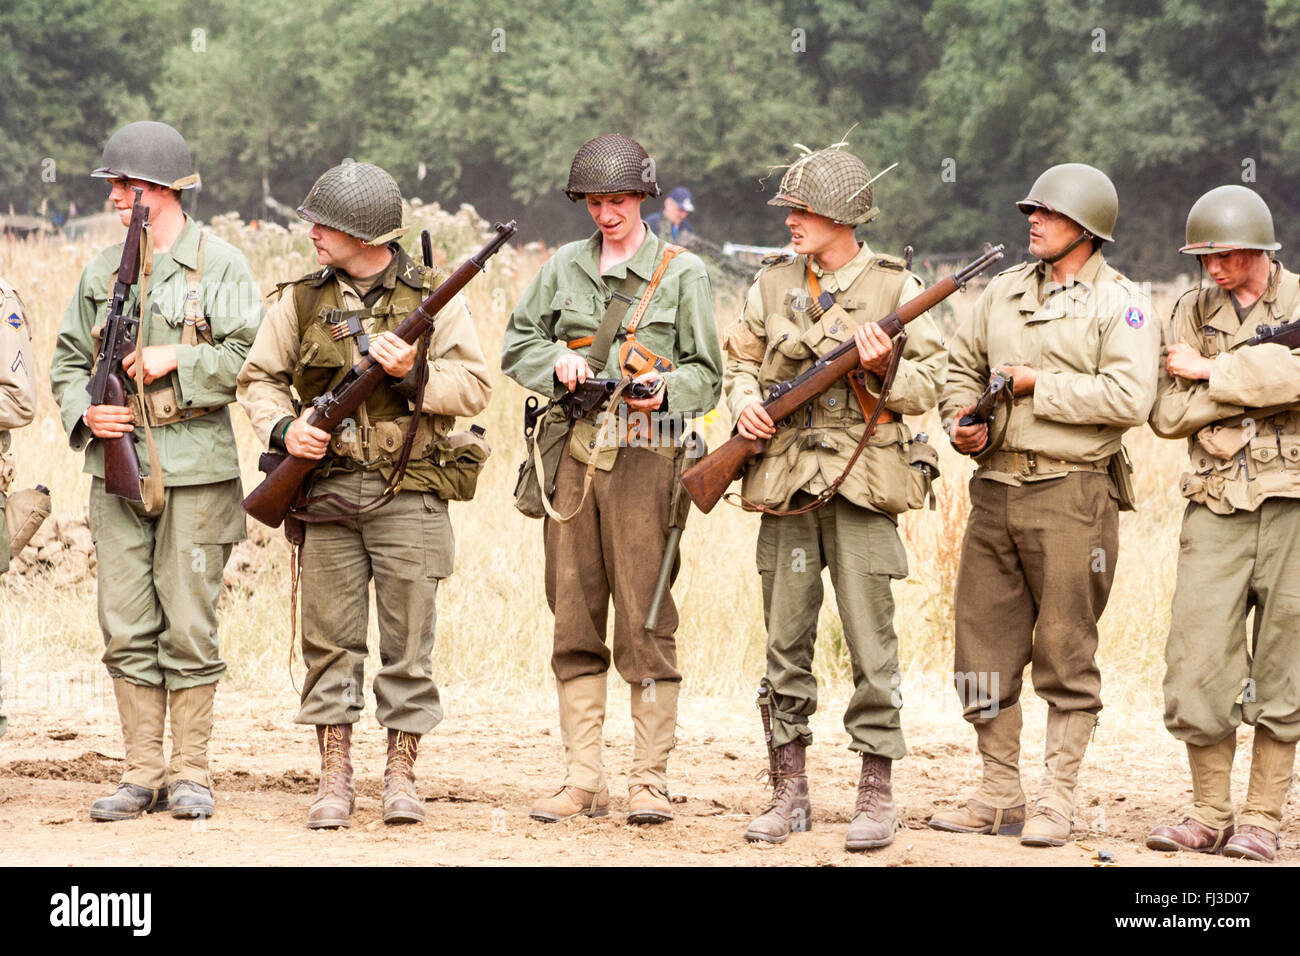 World war two re enactment  Line of six American soldiers